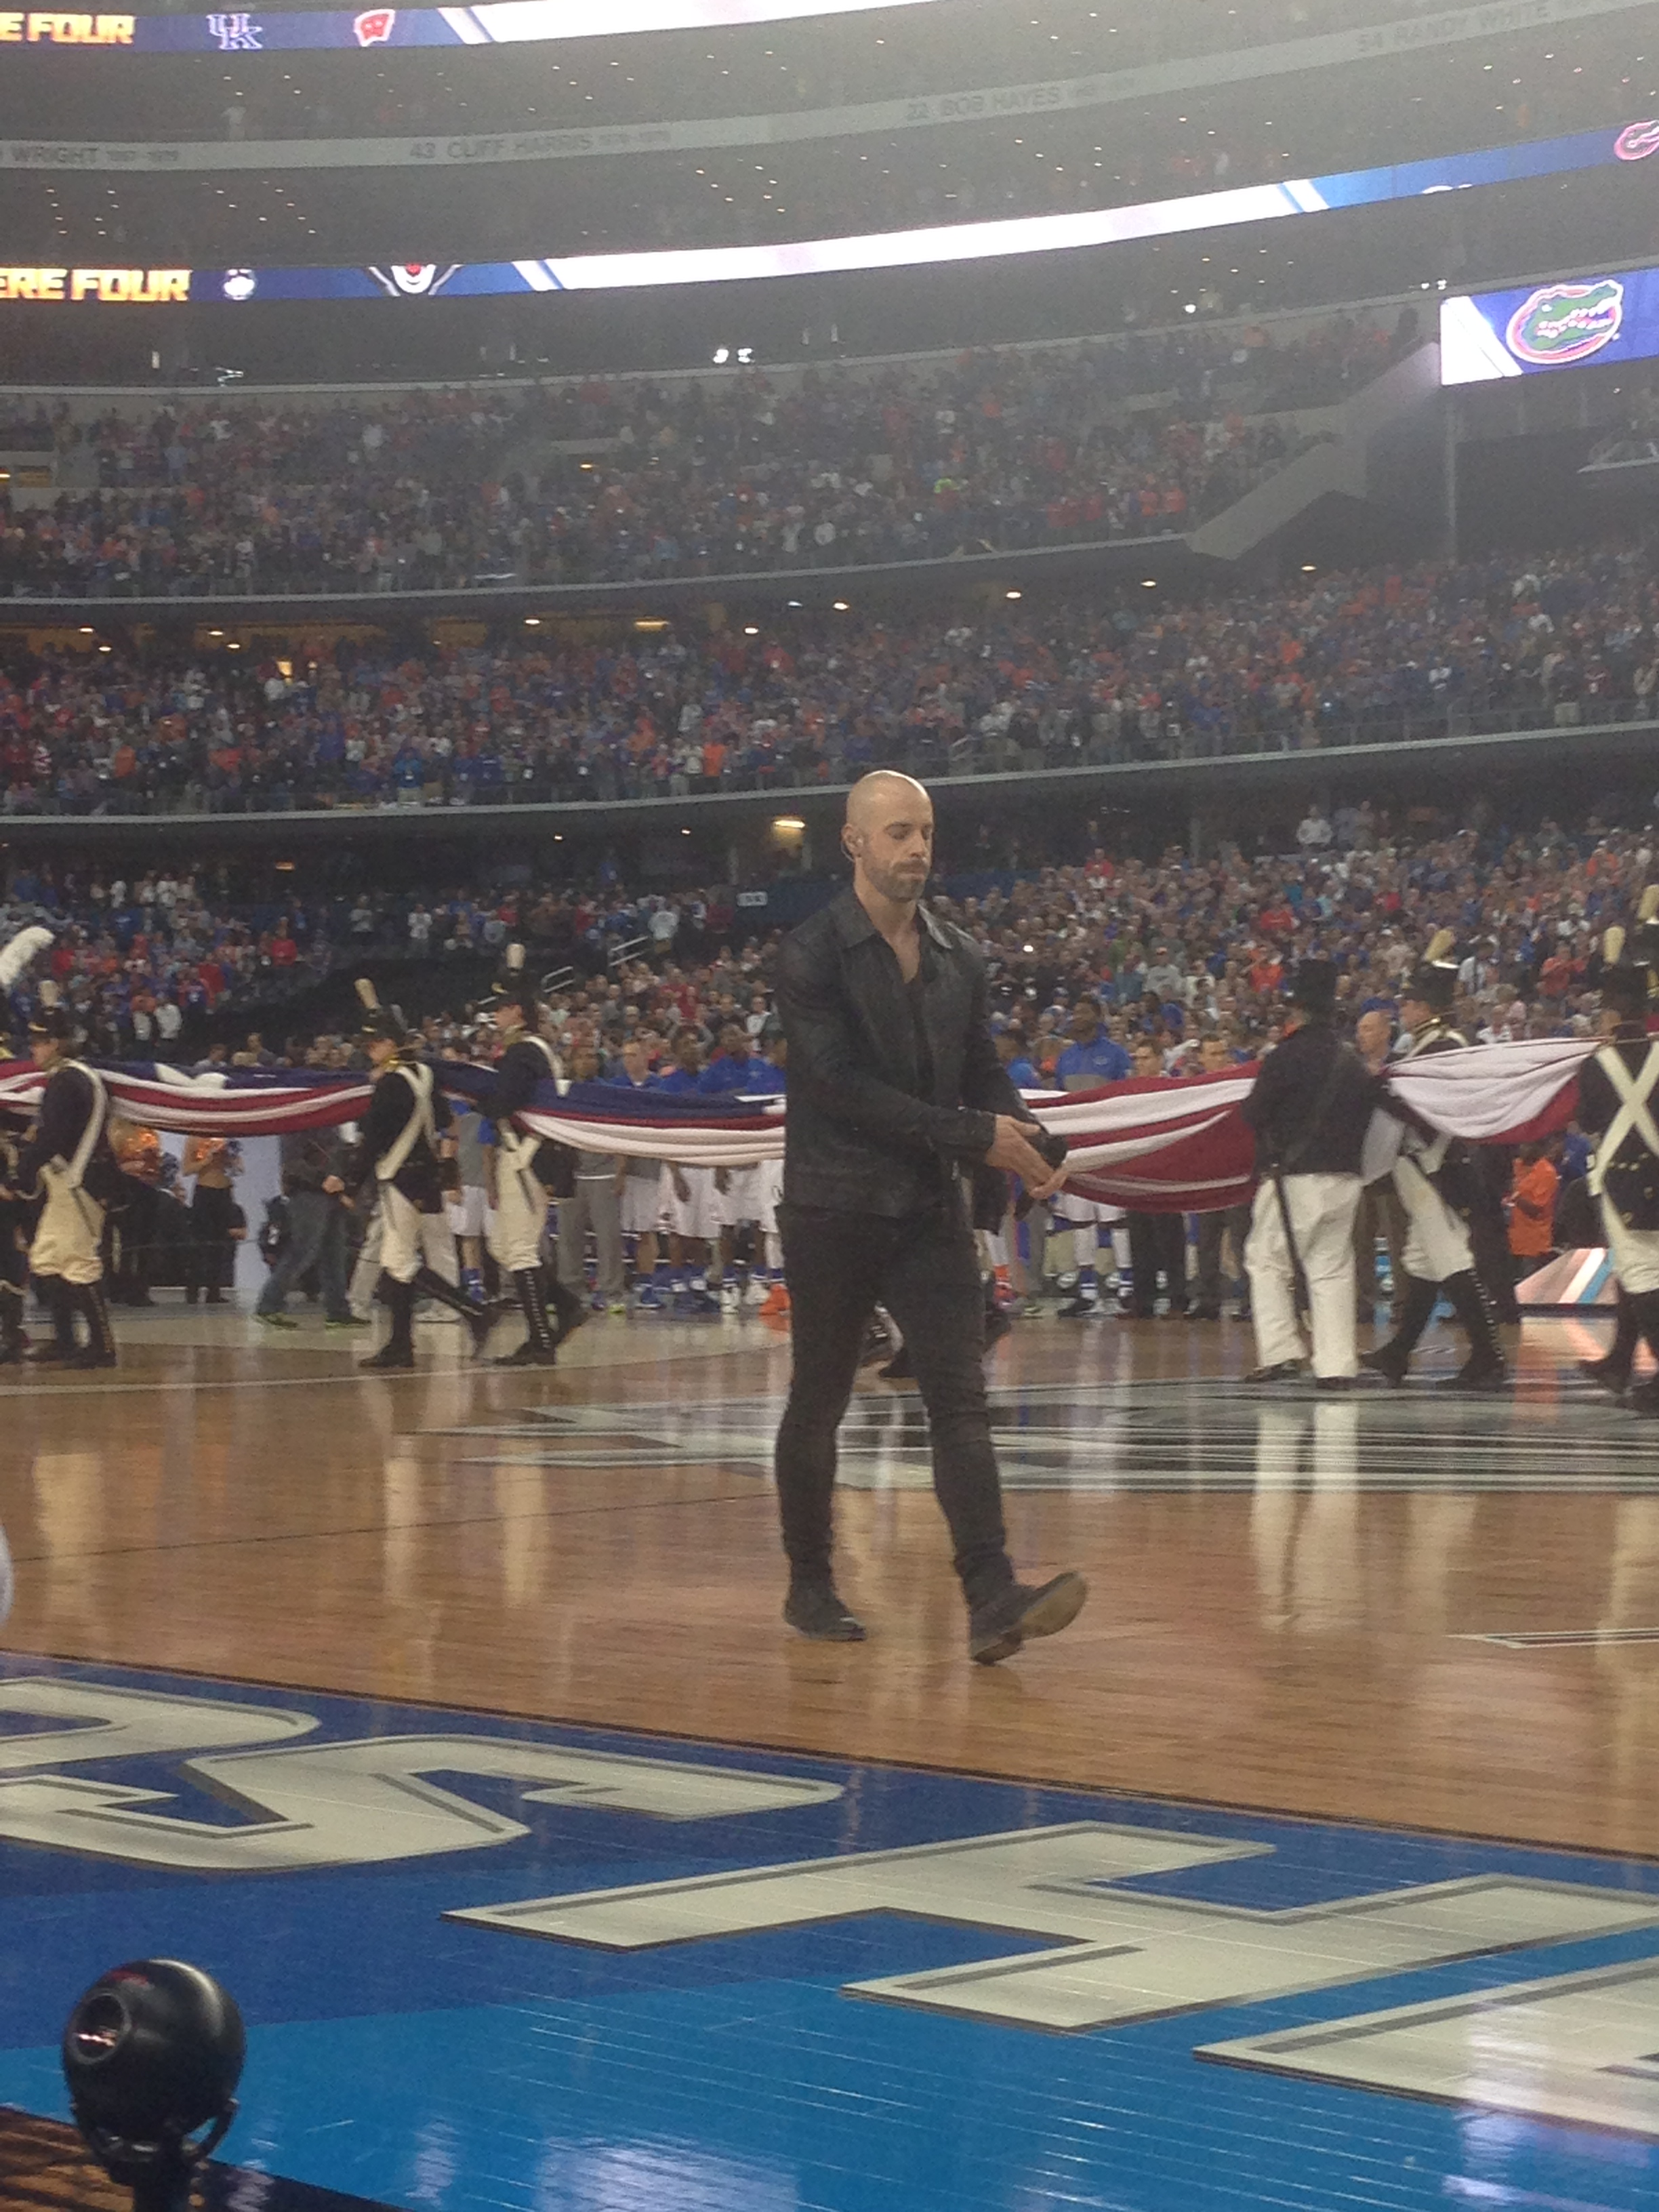 Artist Chris Daughtry heading off the court after performing the national anthem.